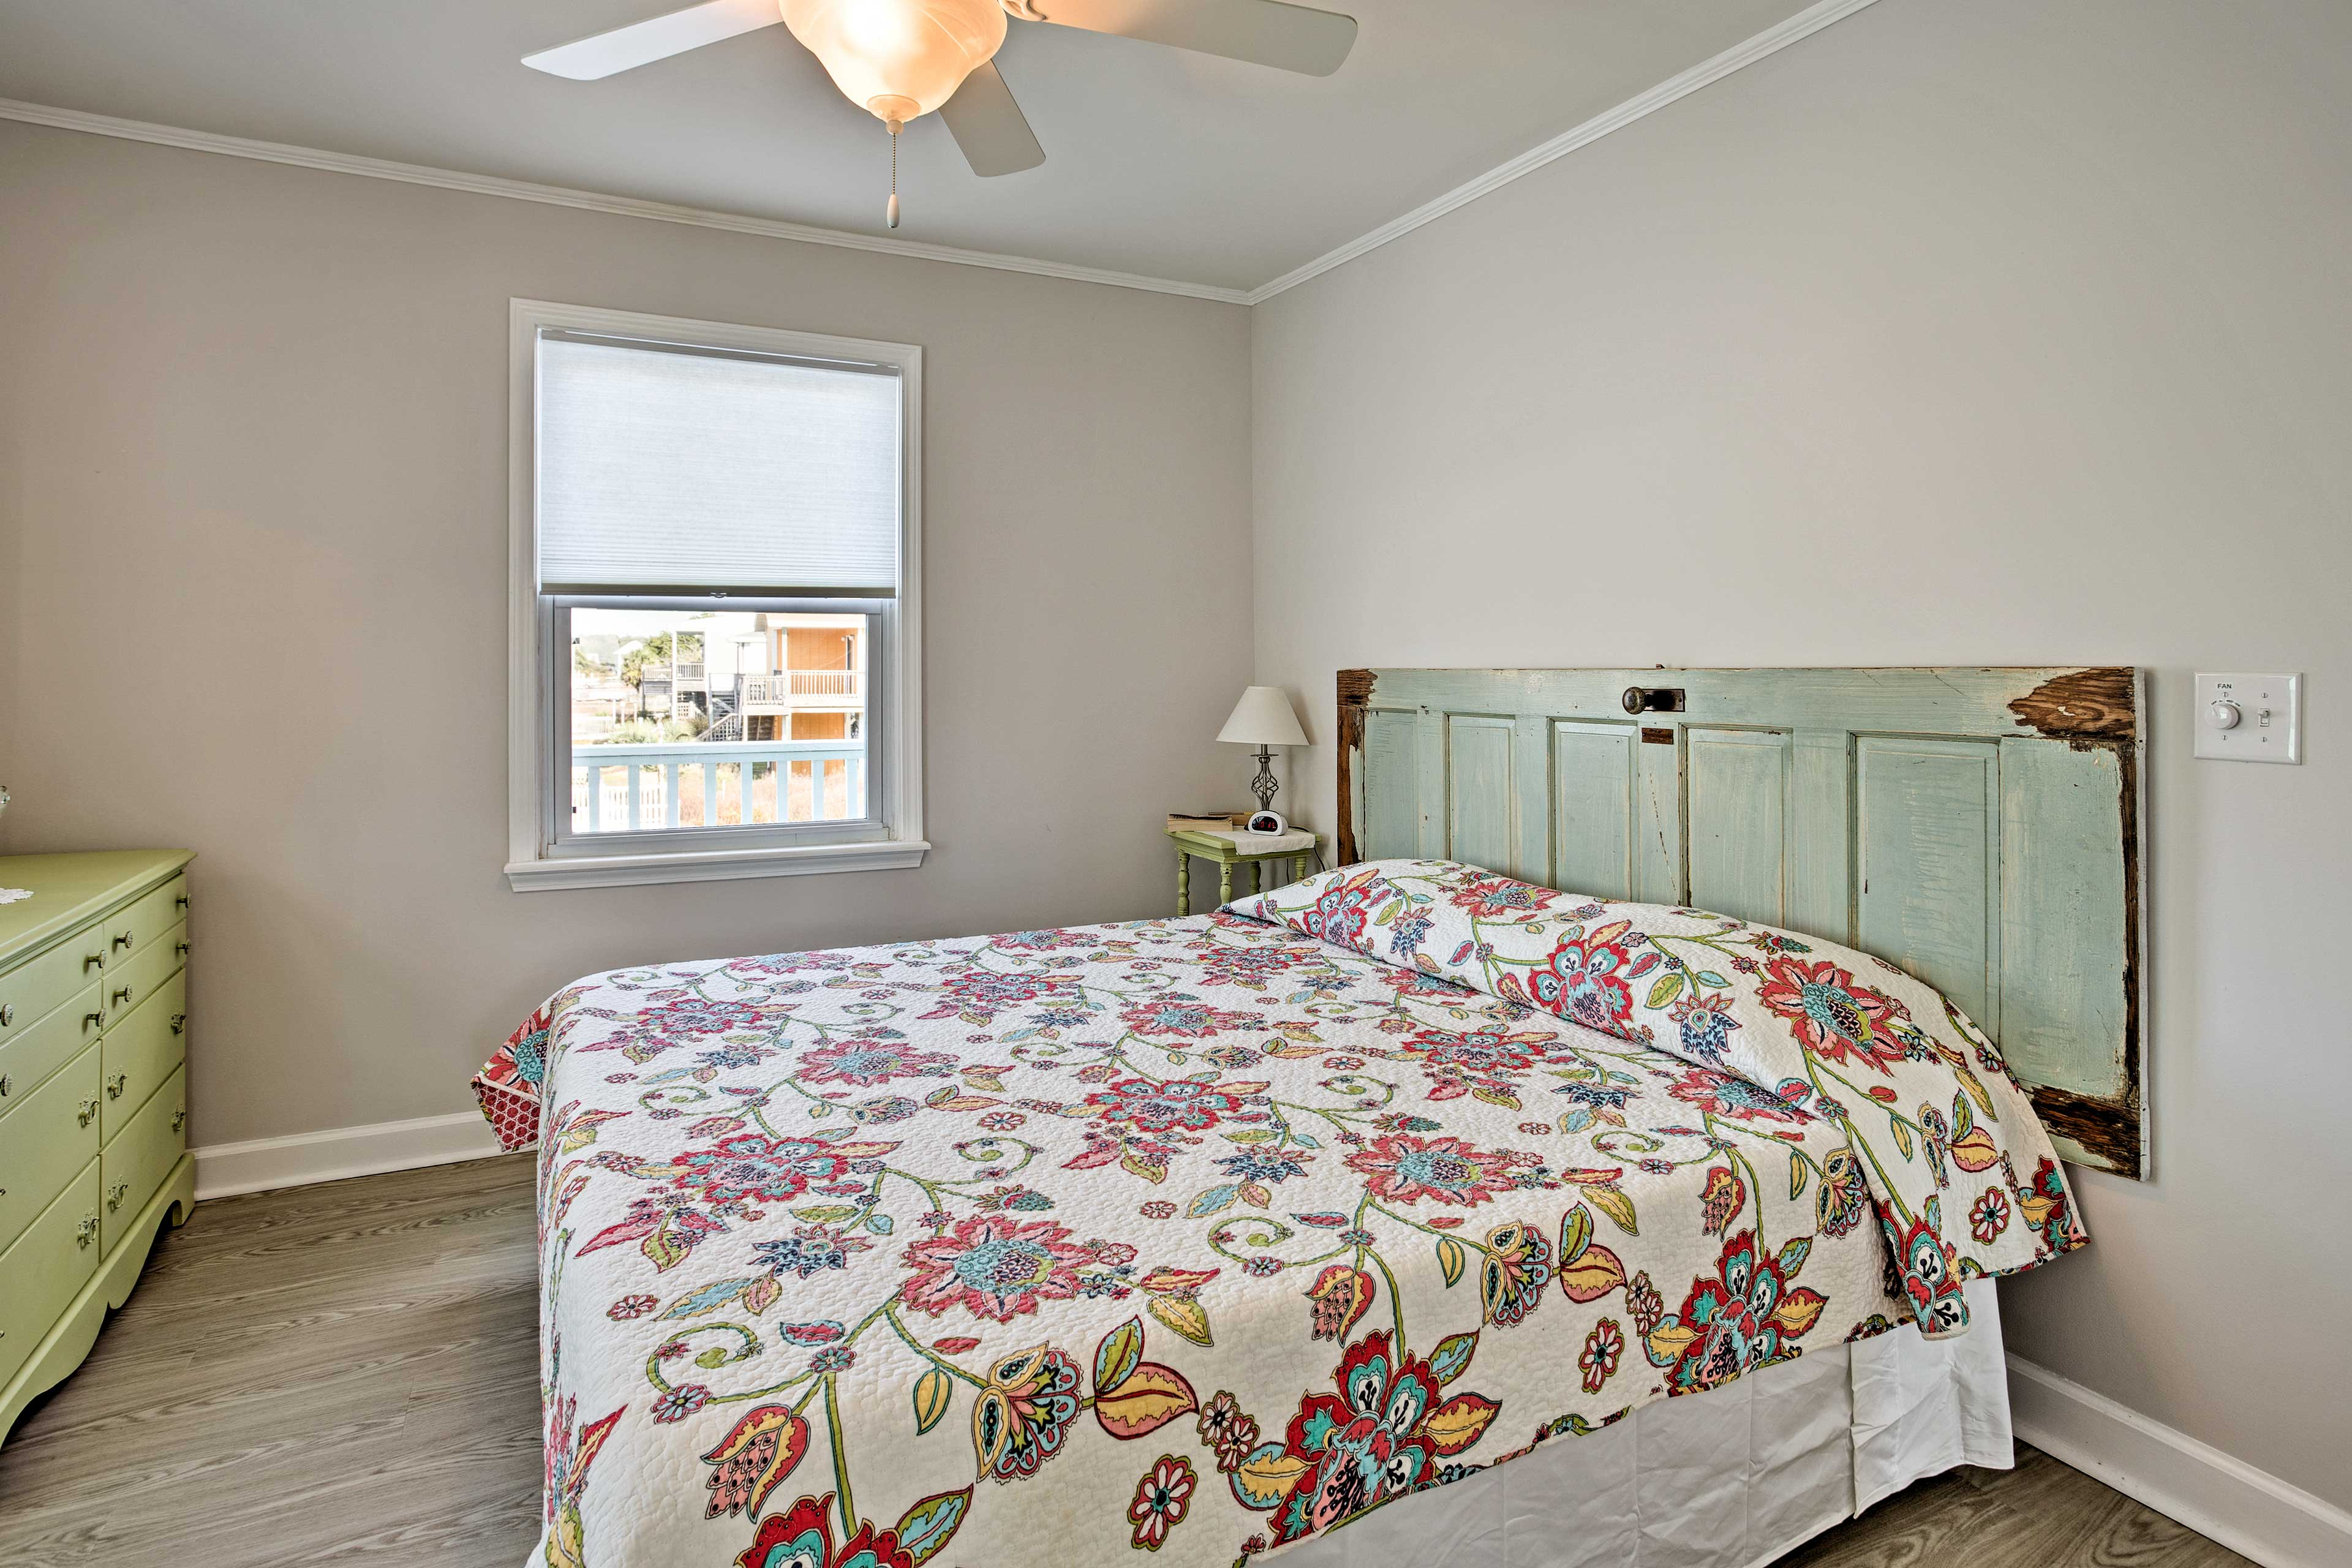 Another king bed highlights this second bedroom.